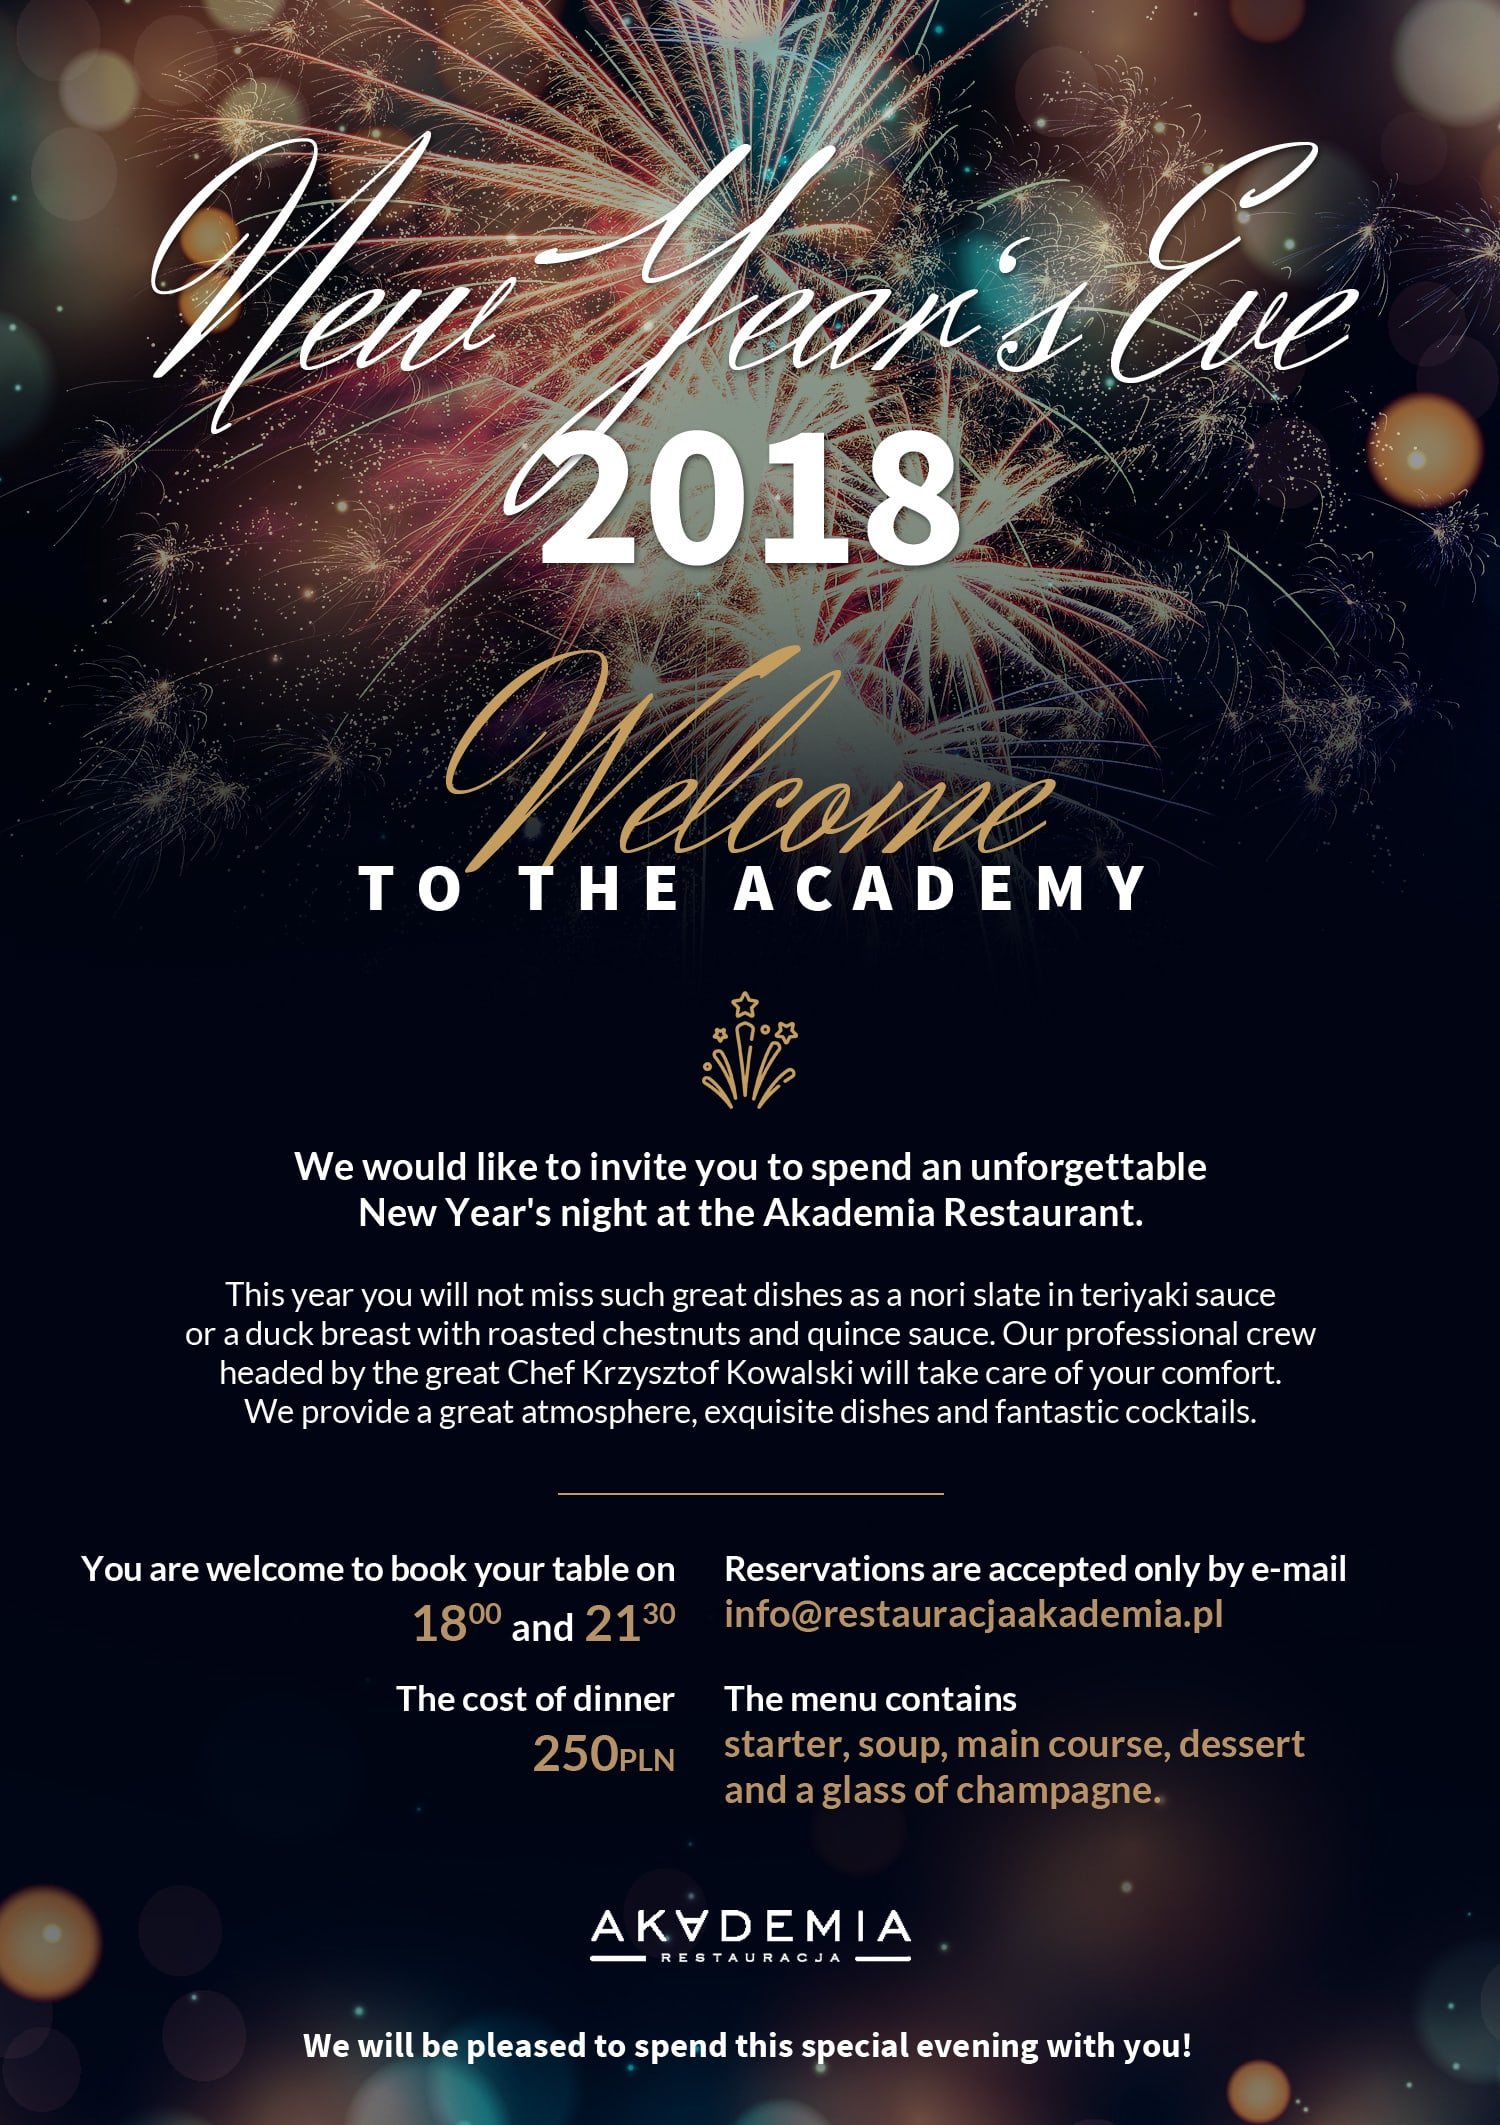 new years eve 2018 in akademia restaurant